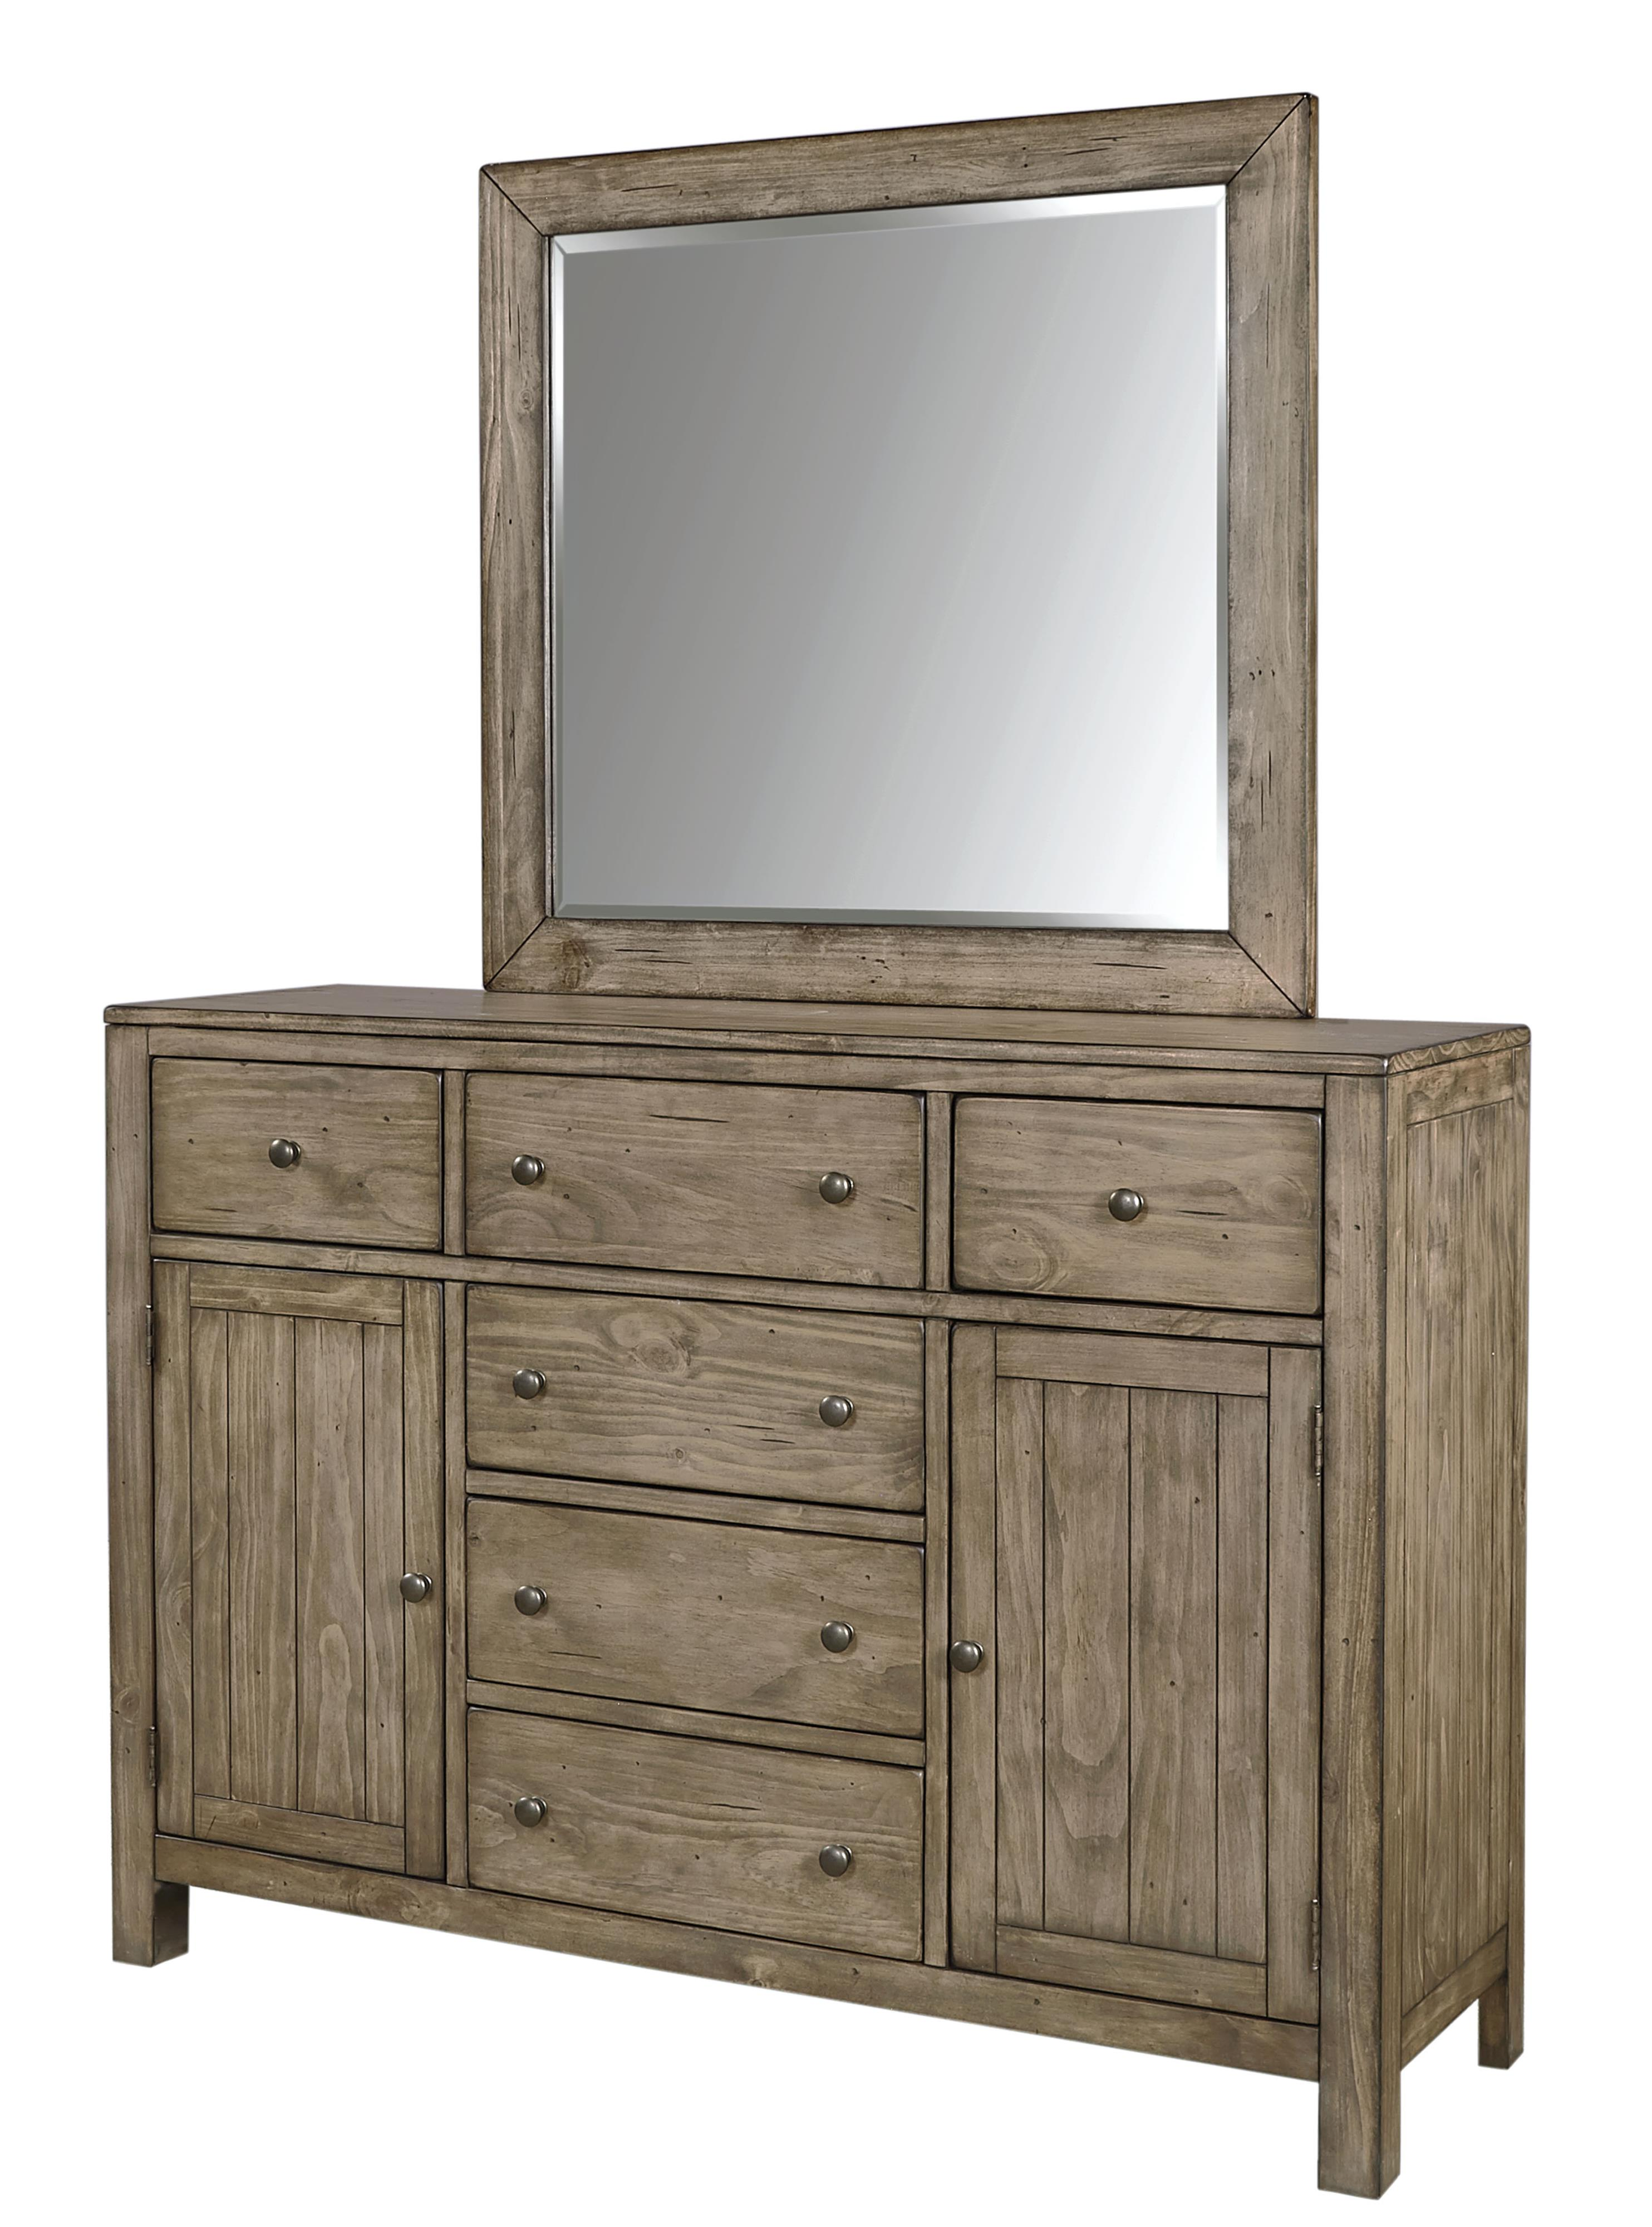 Aspenhome Tildon 6 Drawer And 2 Door Chesser With Landscape Mirror Dunk Bright Furniture